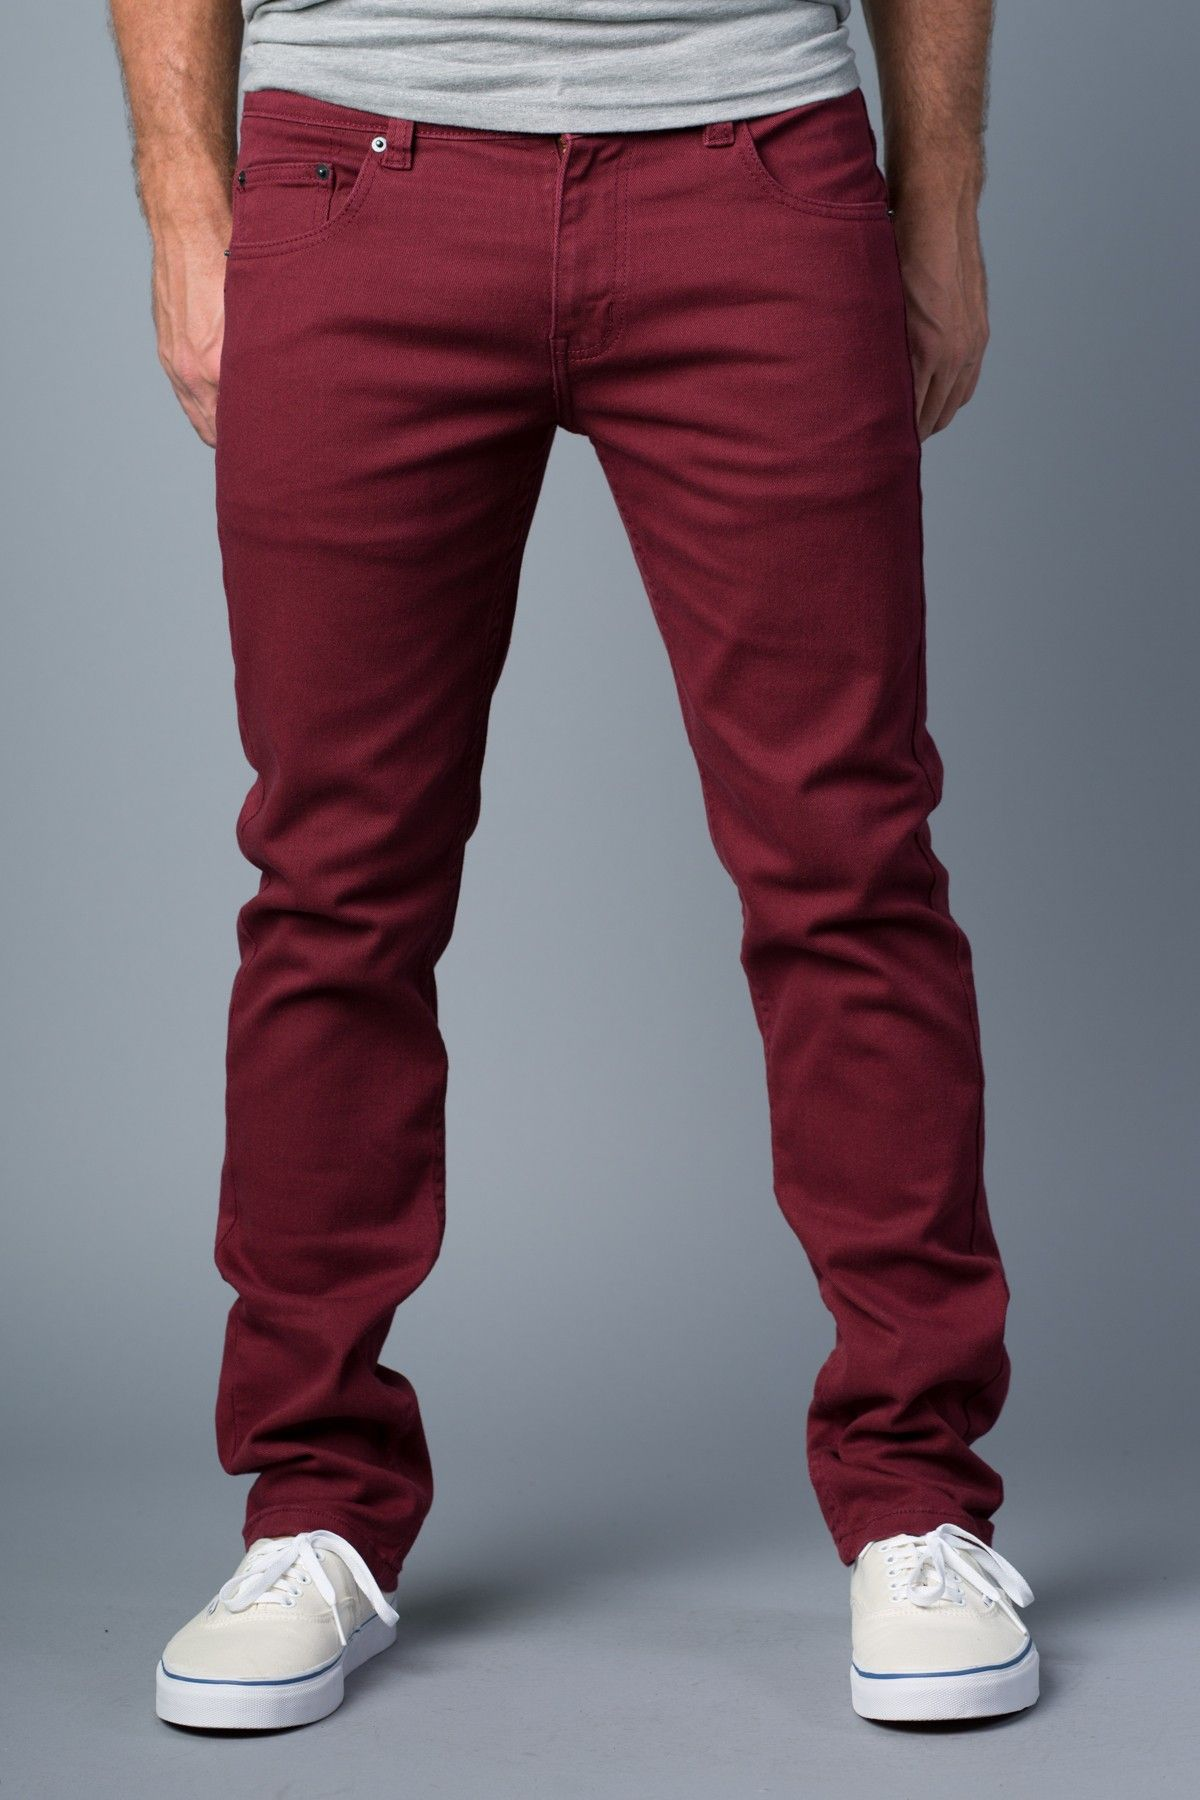 Polychrom} Full Maroon Skinny-Slim Jeans | {Polychrom} Colored ...